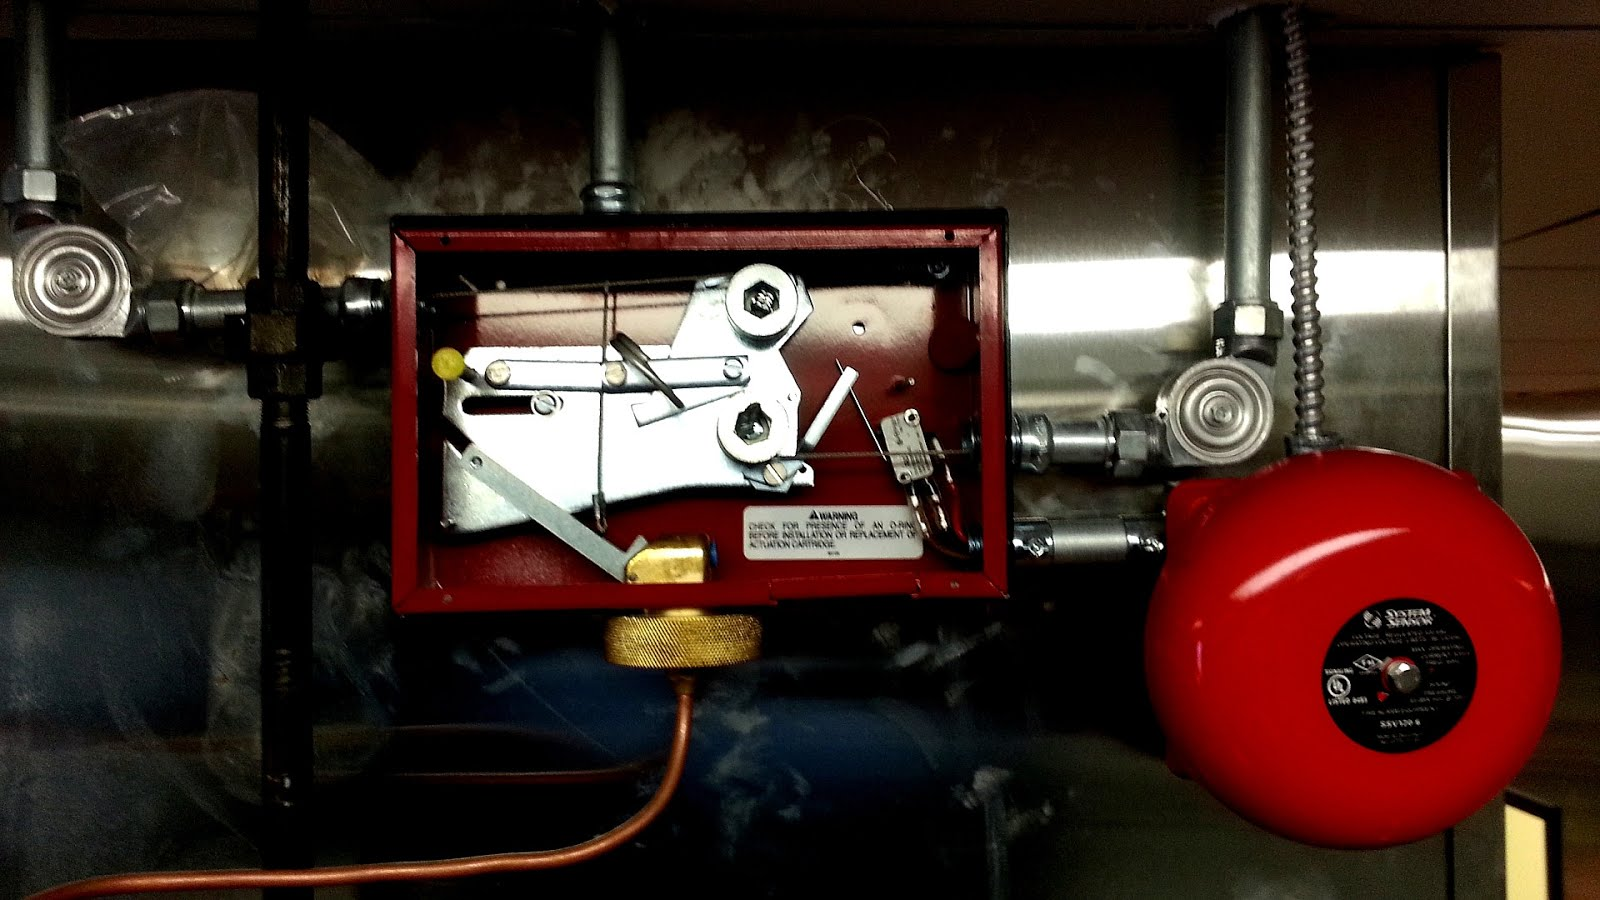 Kitchen Fire Suppression System - Fire Choices